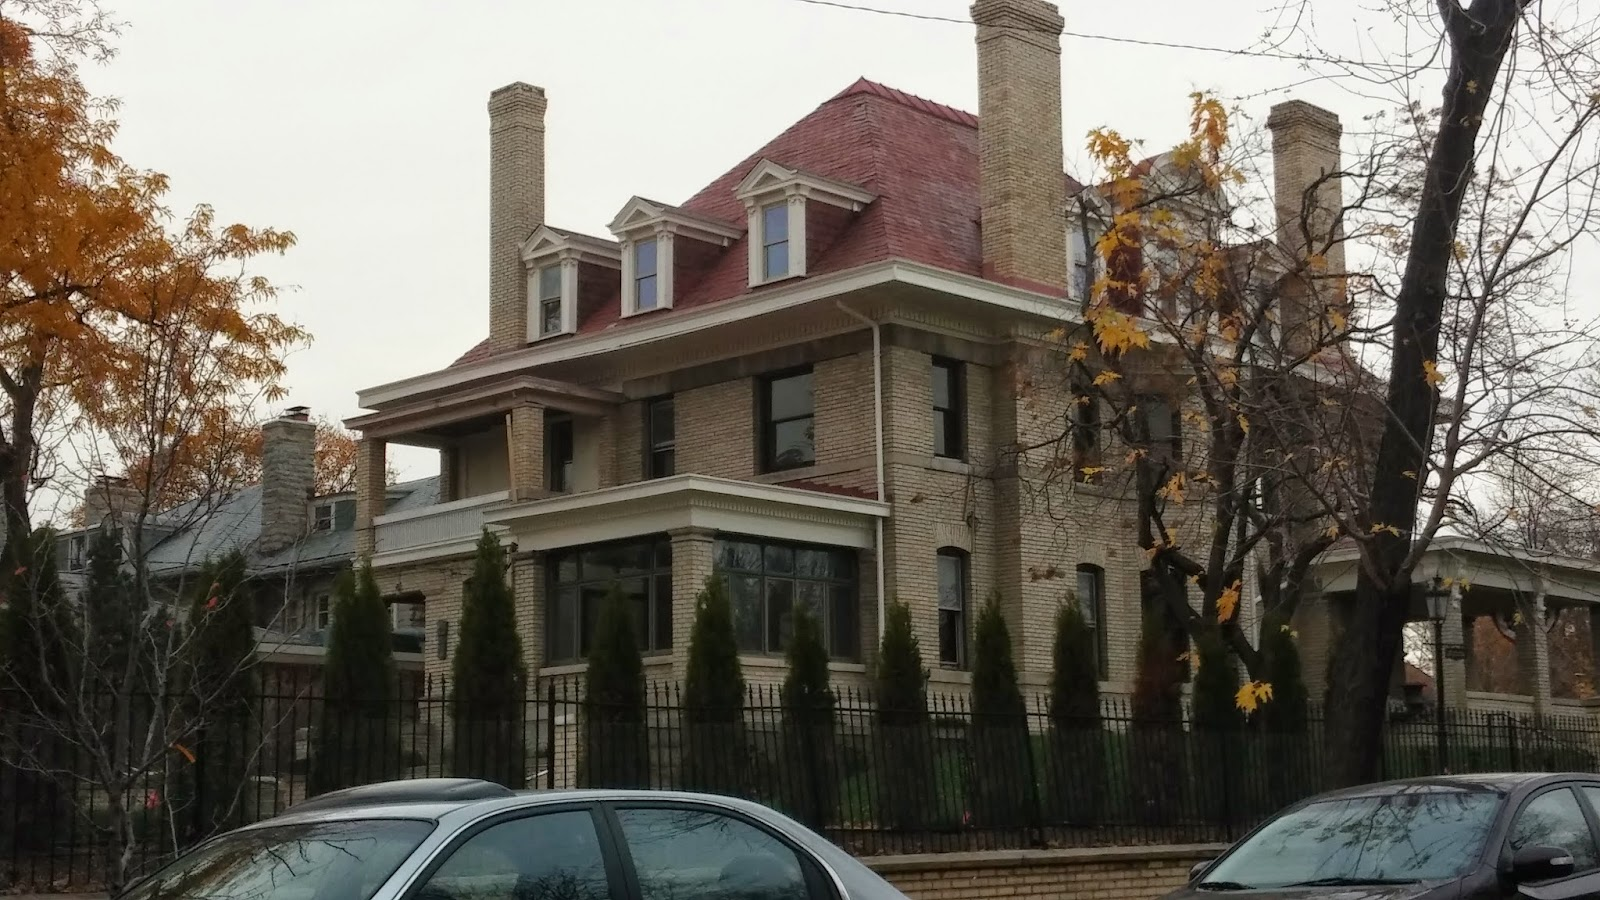 Rehab addict 1904 mansion - This Beautiful House Located At 986 Summit Avenue In St Paul Minnesota Was Featured On Season 5 Of Diy Network S Rehab Addict